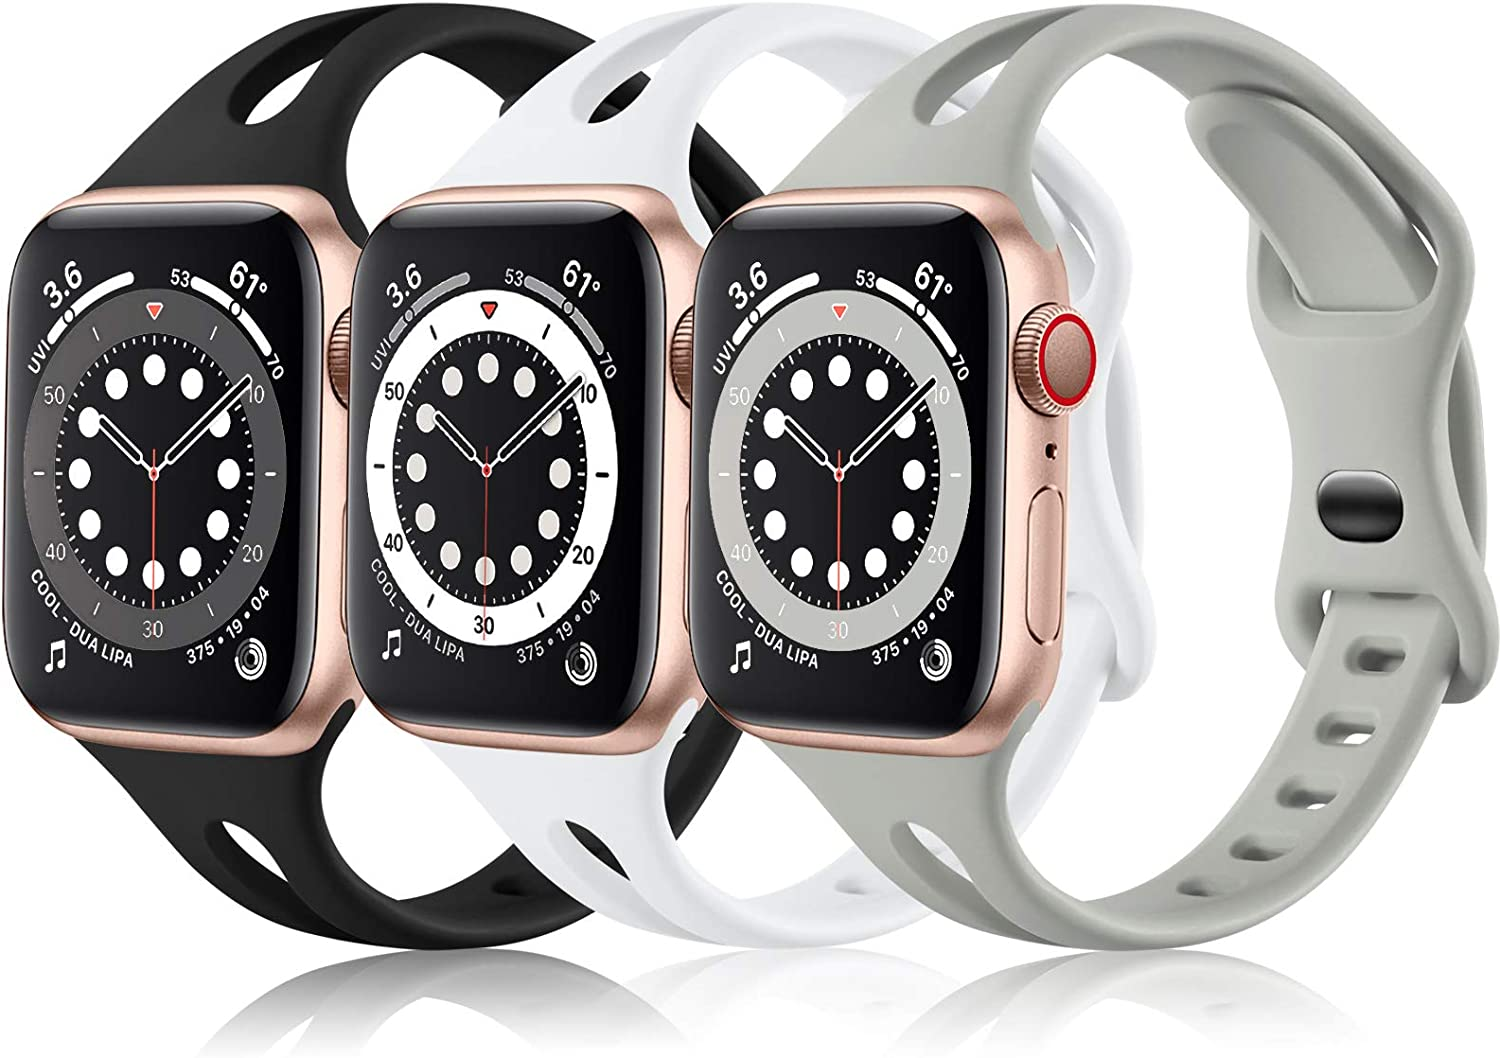 (3 Pack) Vcegari Sport Bands Compatible with Apple Watch 44mm 42mm Women, Soft Thin Silicone Strap for iWatch SE & iWatch Series 6 5 4 3 2 1, Gray/White/Black